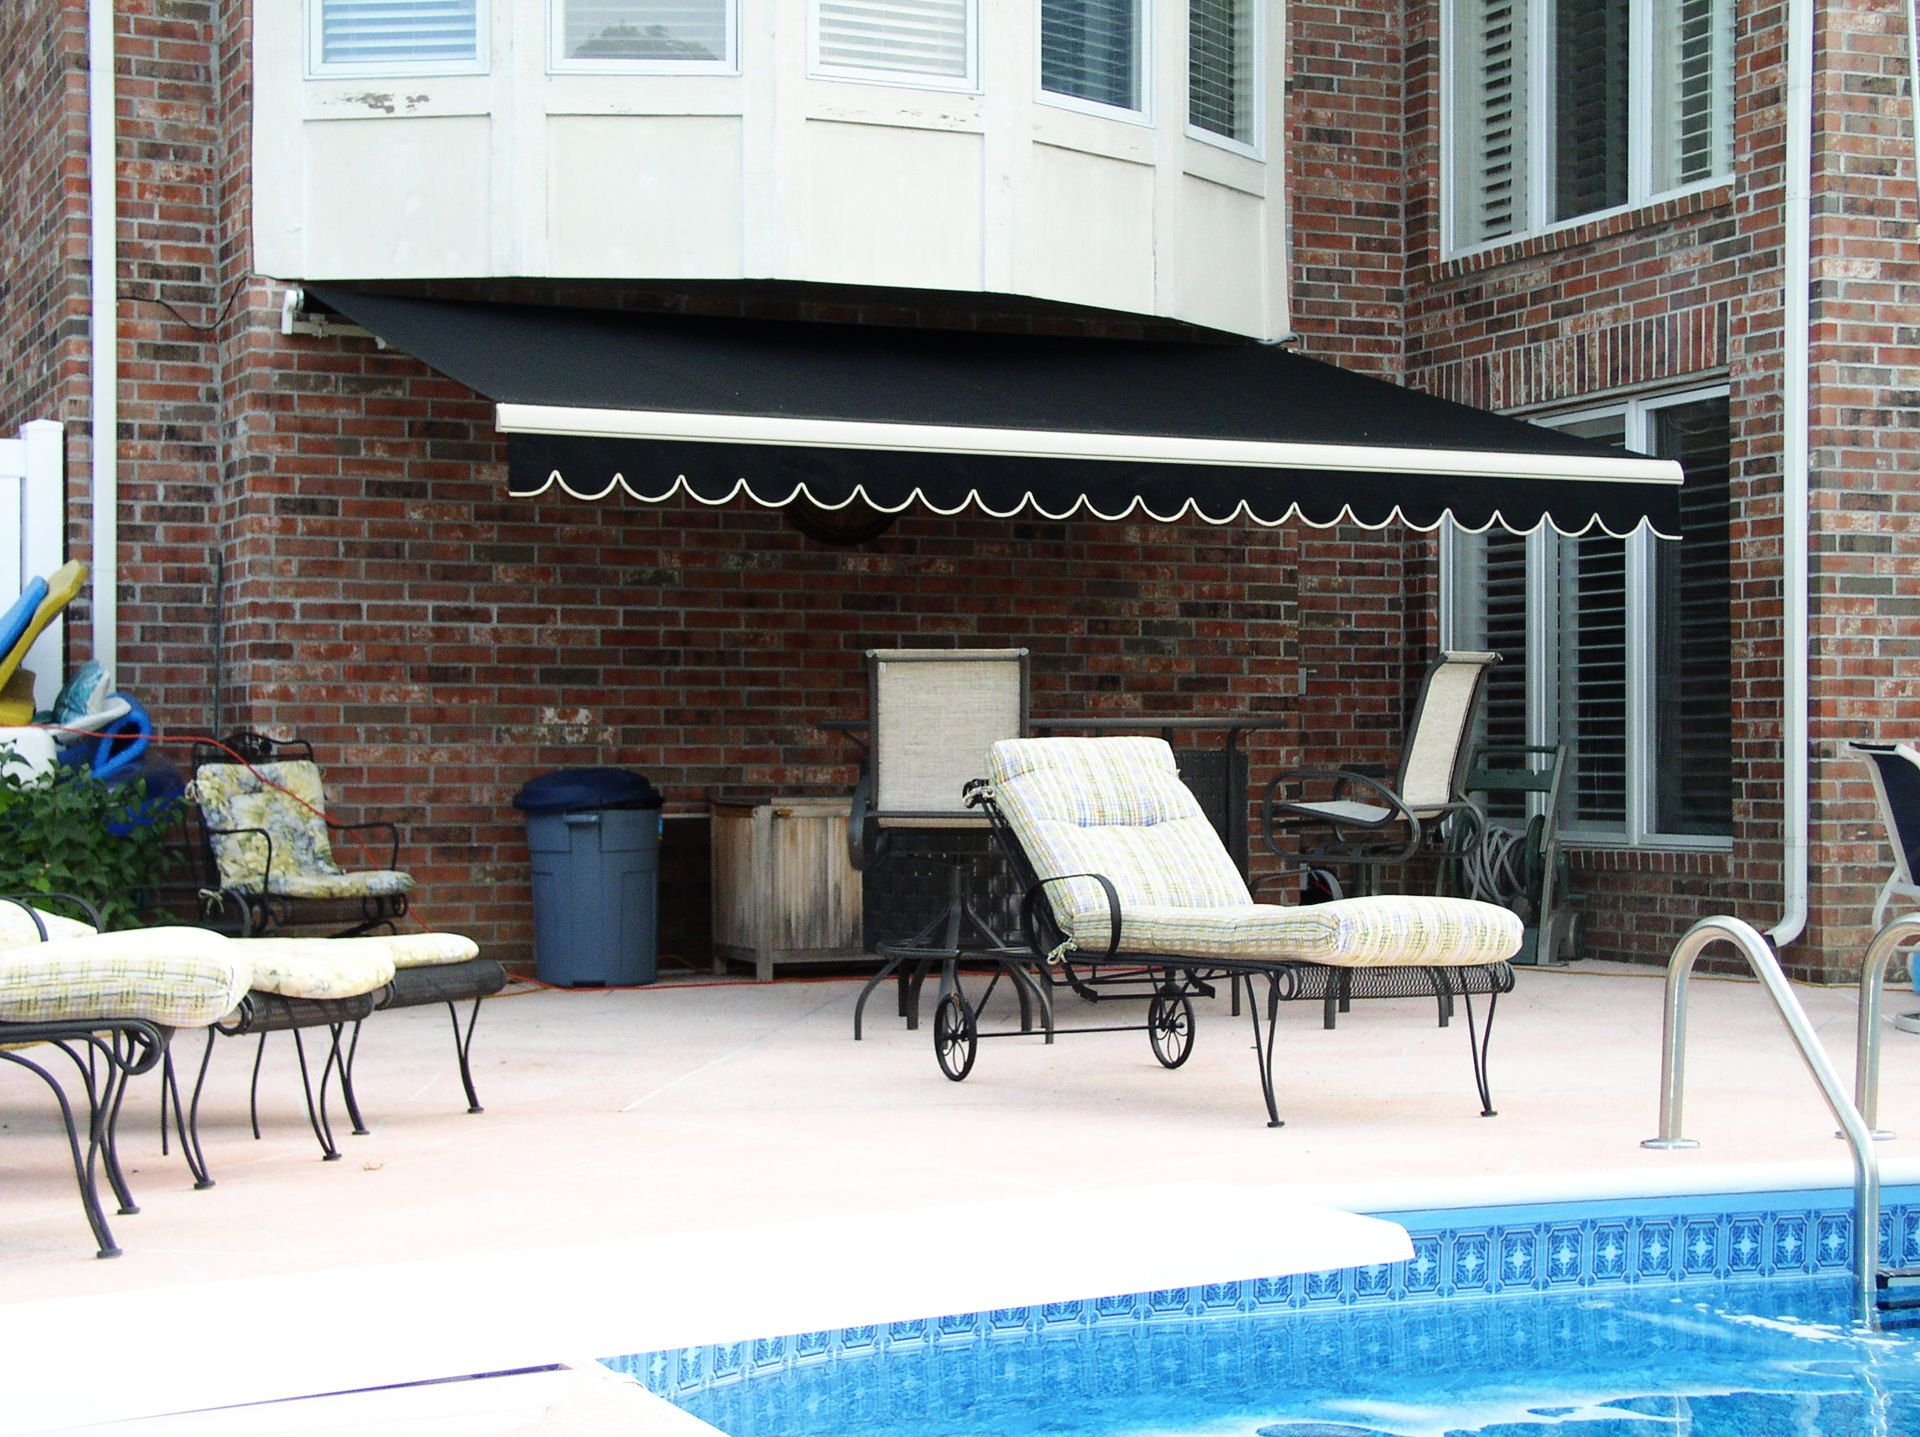 Sun or shade? This retractable awning provides a choice ...